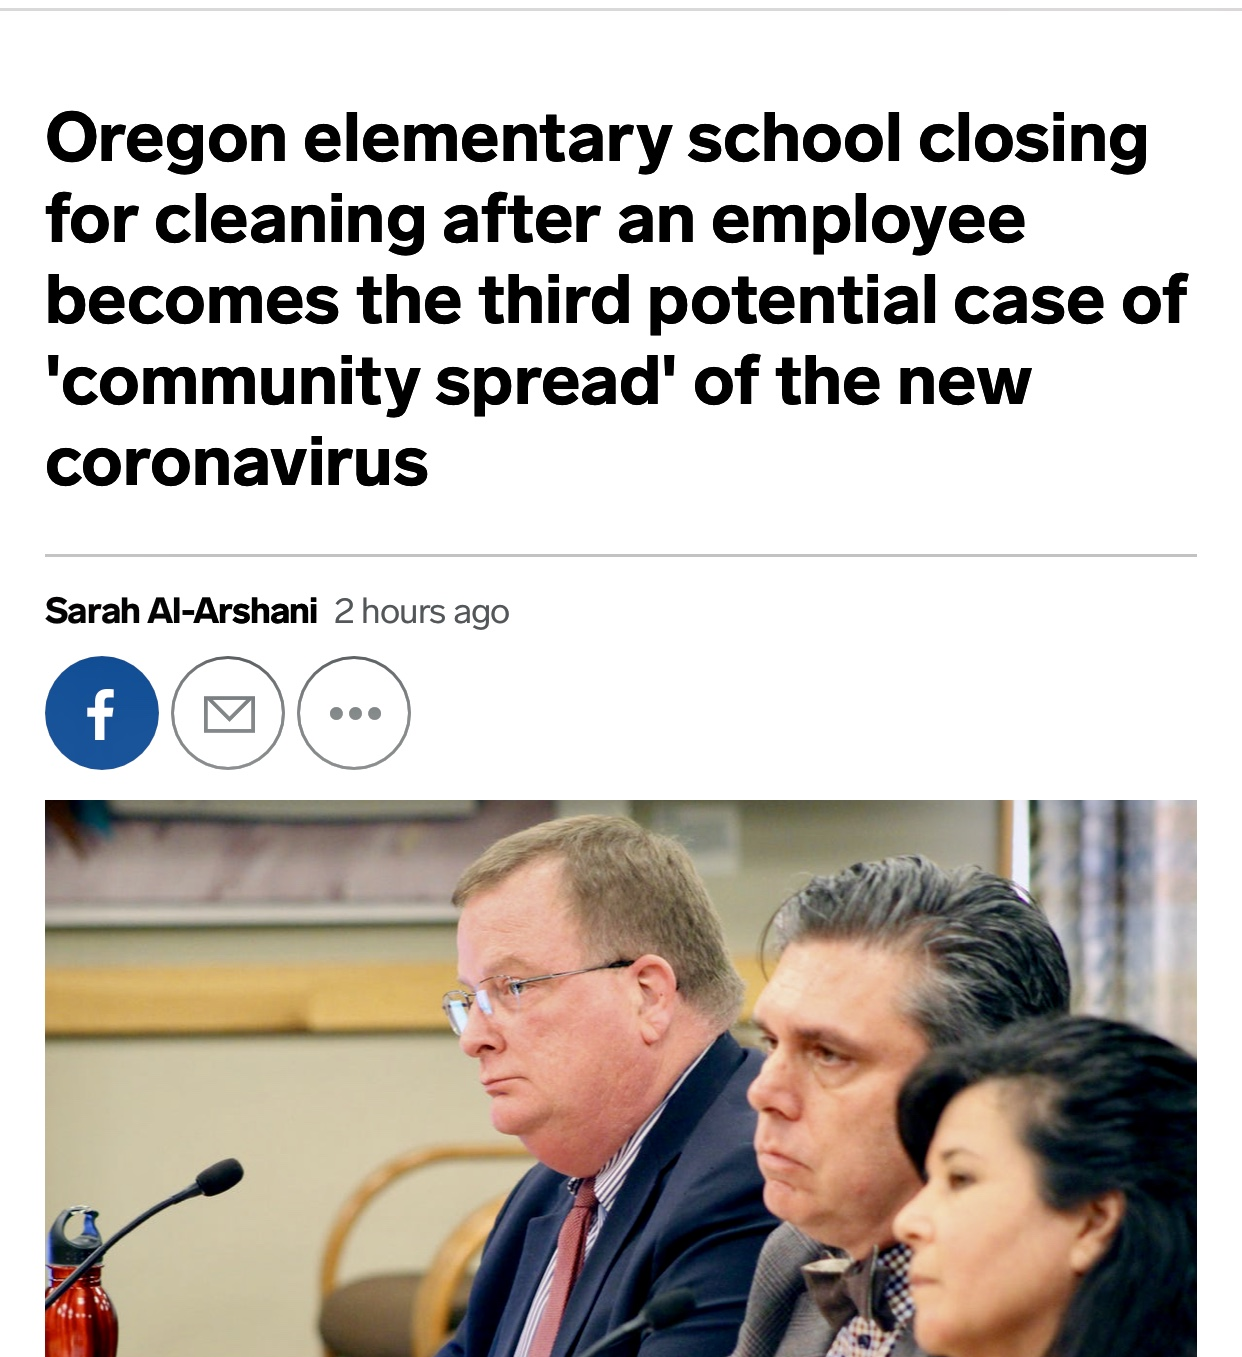 Coronavirus: Oregon elementary school closes, employee tests positive – Business Insider